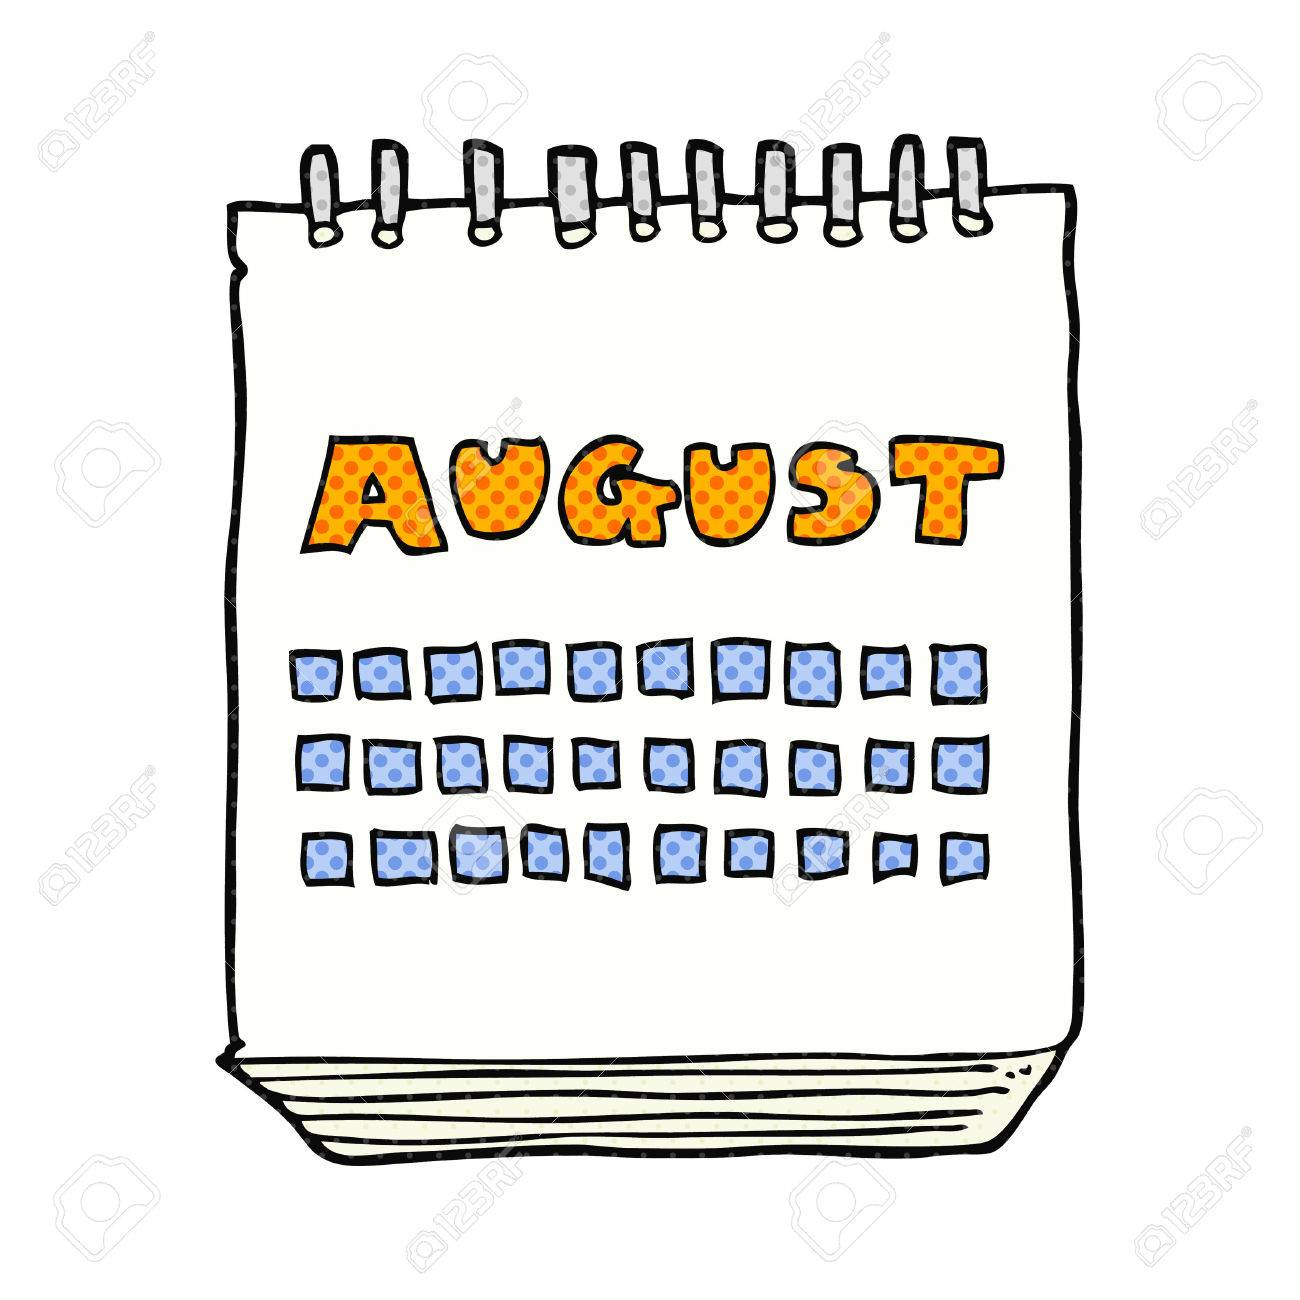 freehand drawn cartoon calendar showing month of august.